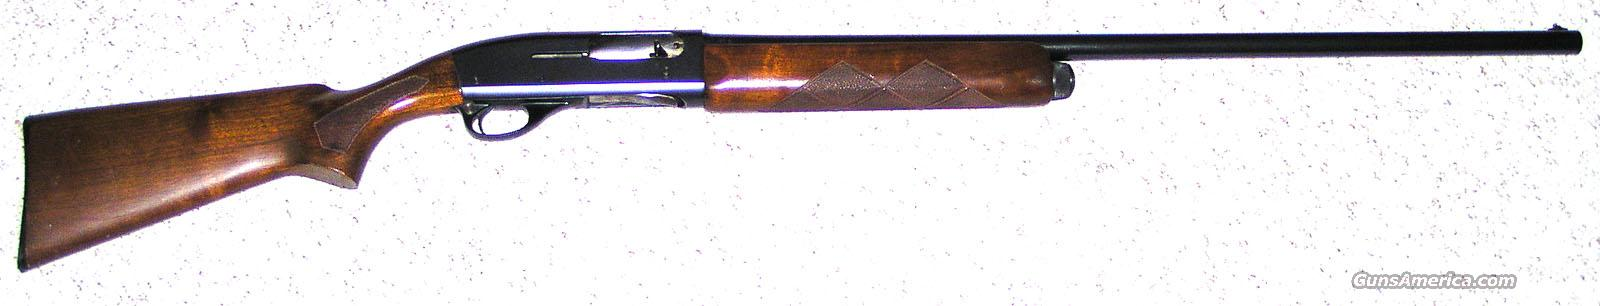 11-48 REMINGTON 12GA.  Guns > Shotguns > Remington Shotguns  > Autoloaders > Hunting